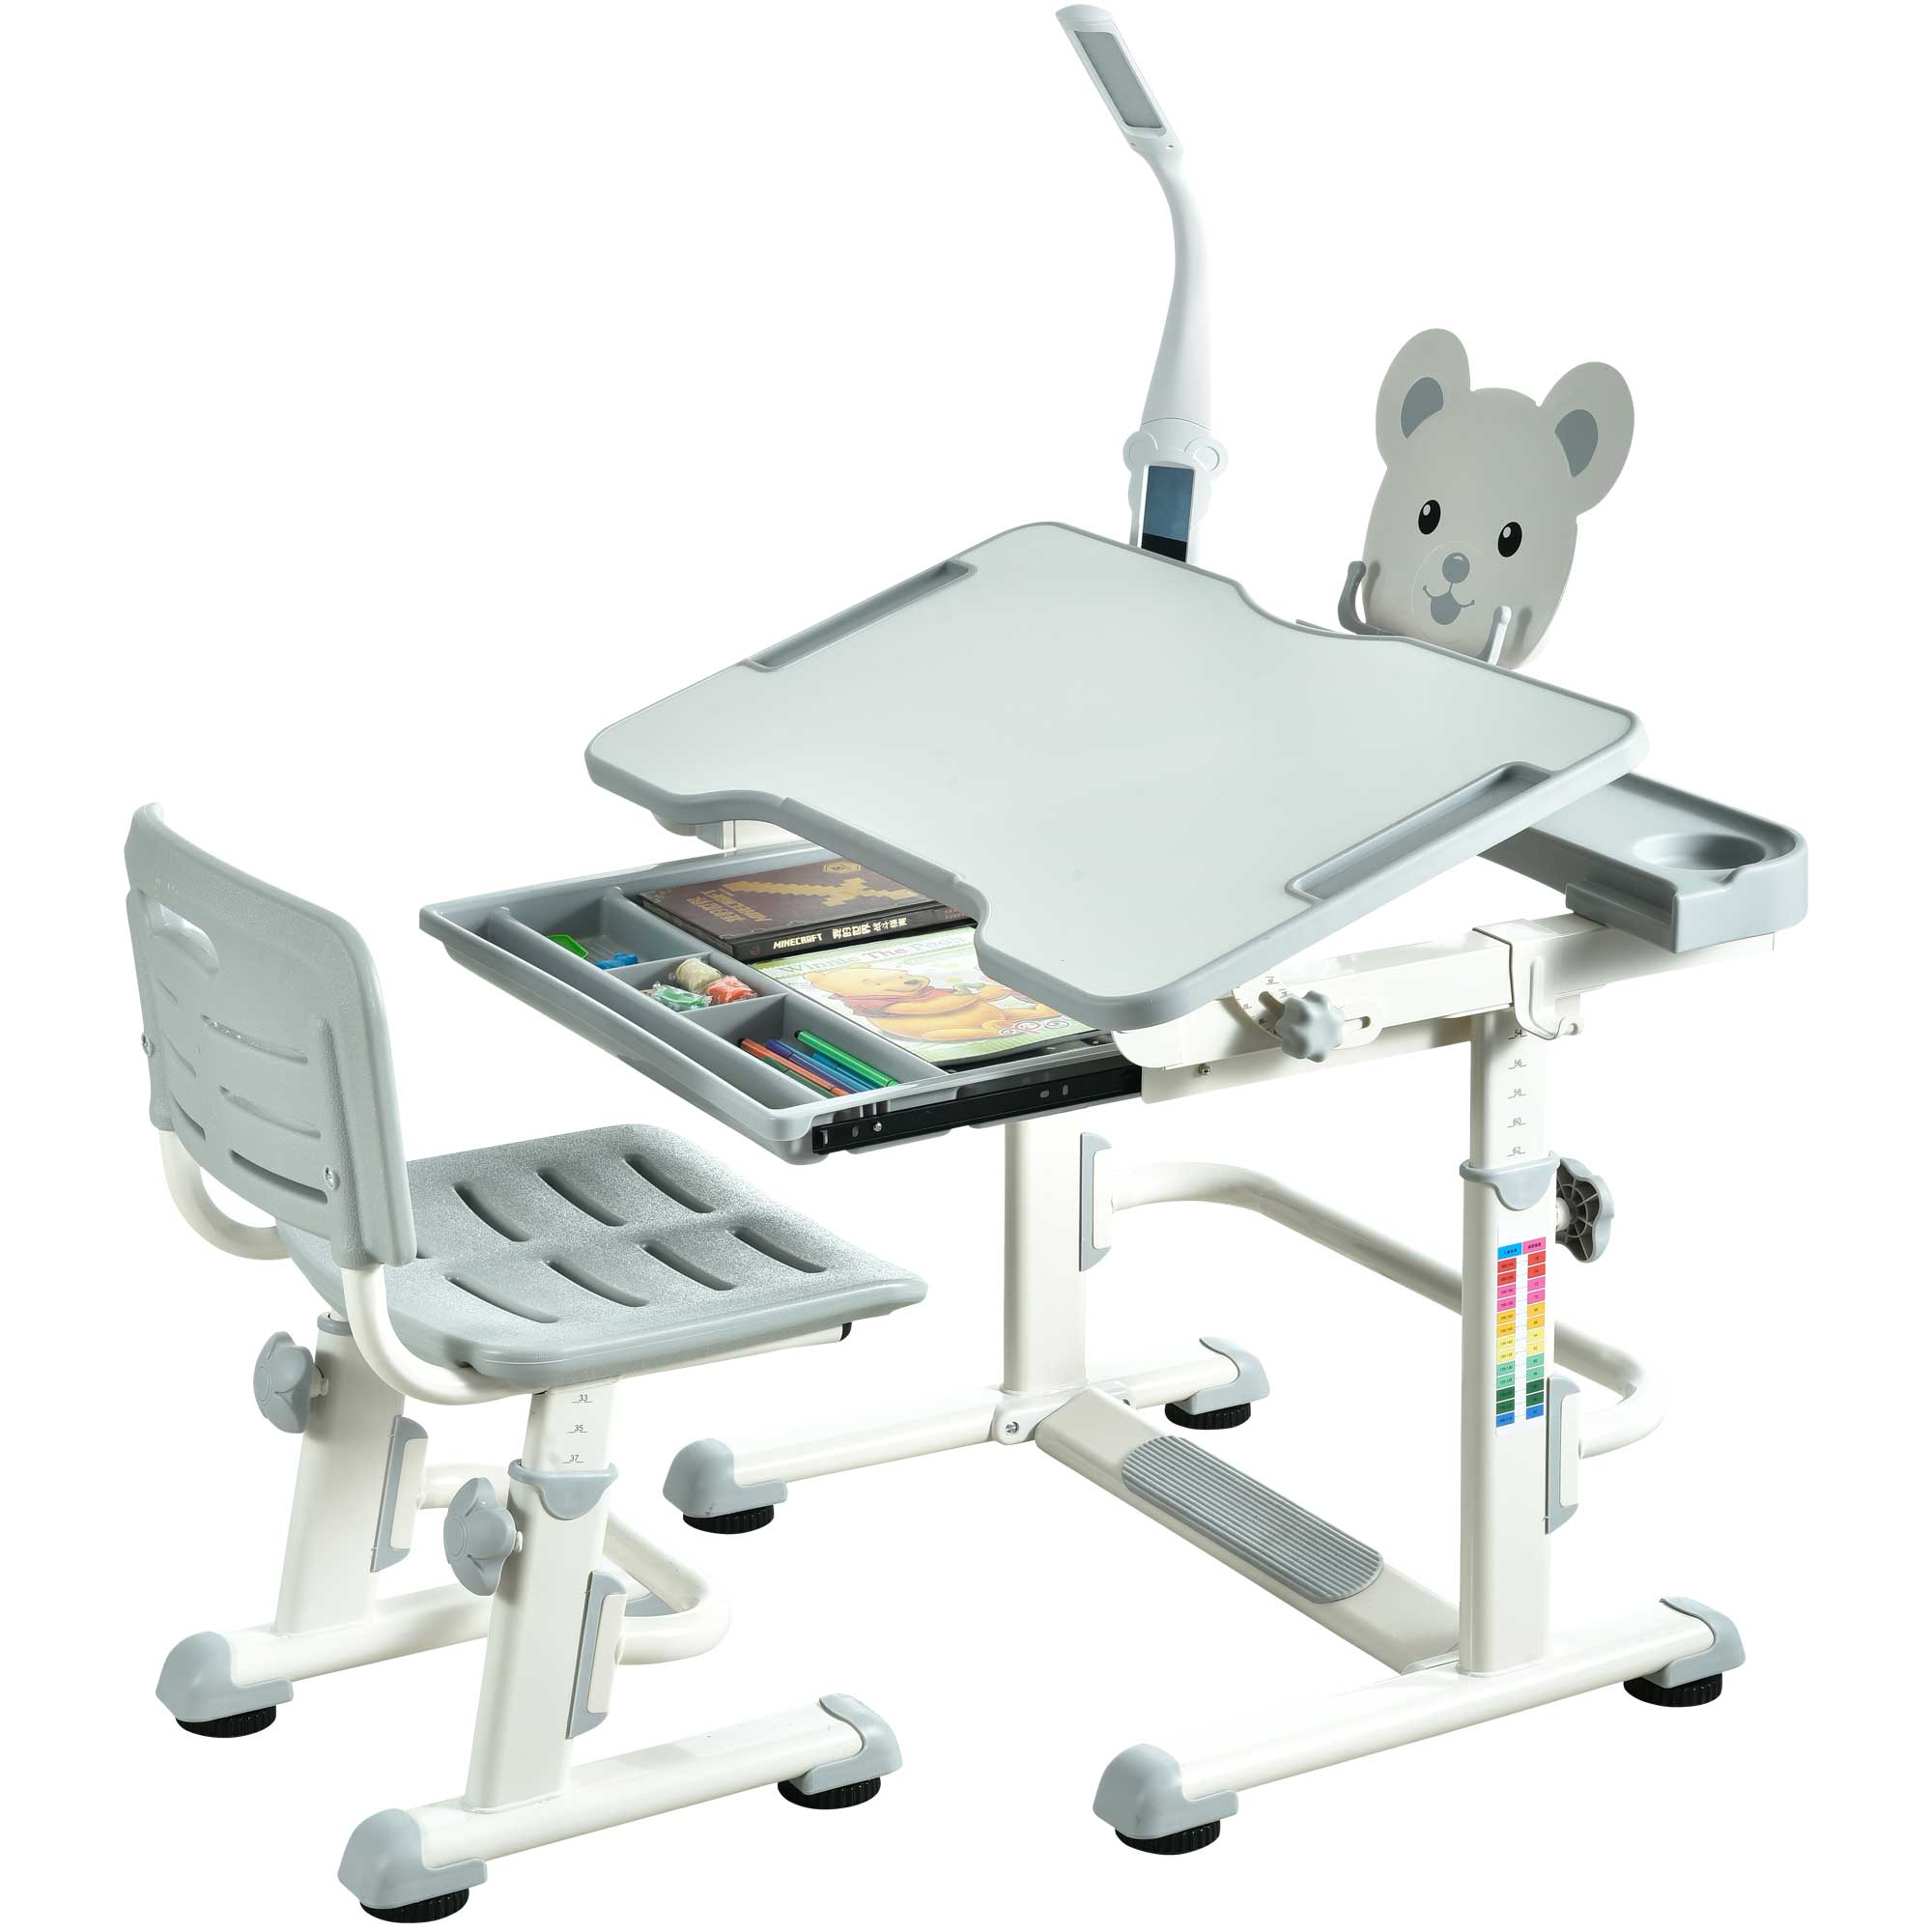 ergonomic-kids-desk-study-table-school-desk-height-adjustable-sprite-grey-desk-09